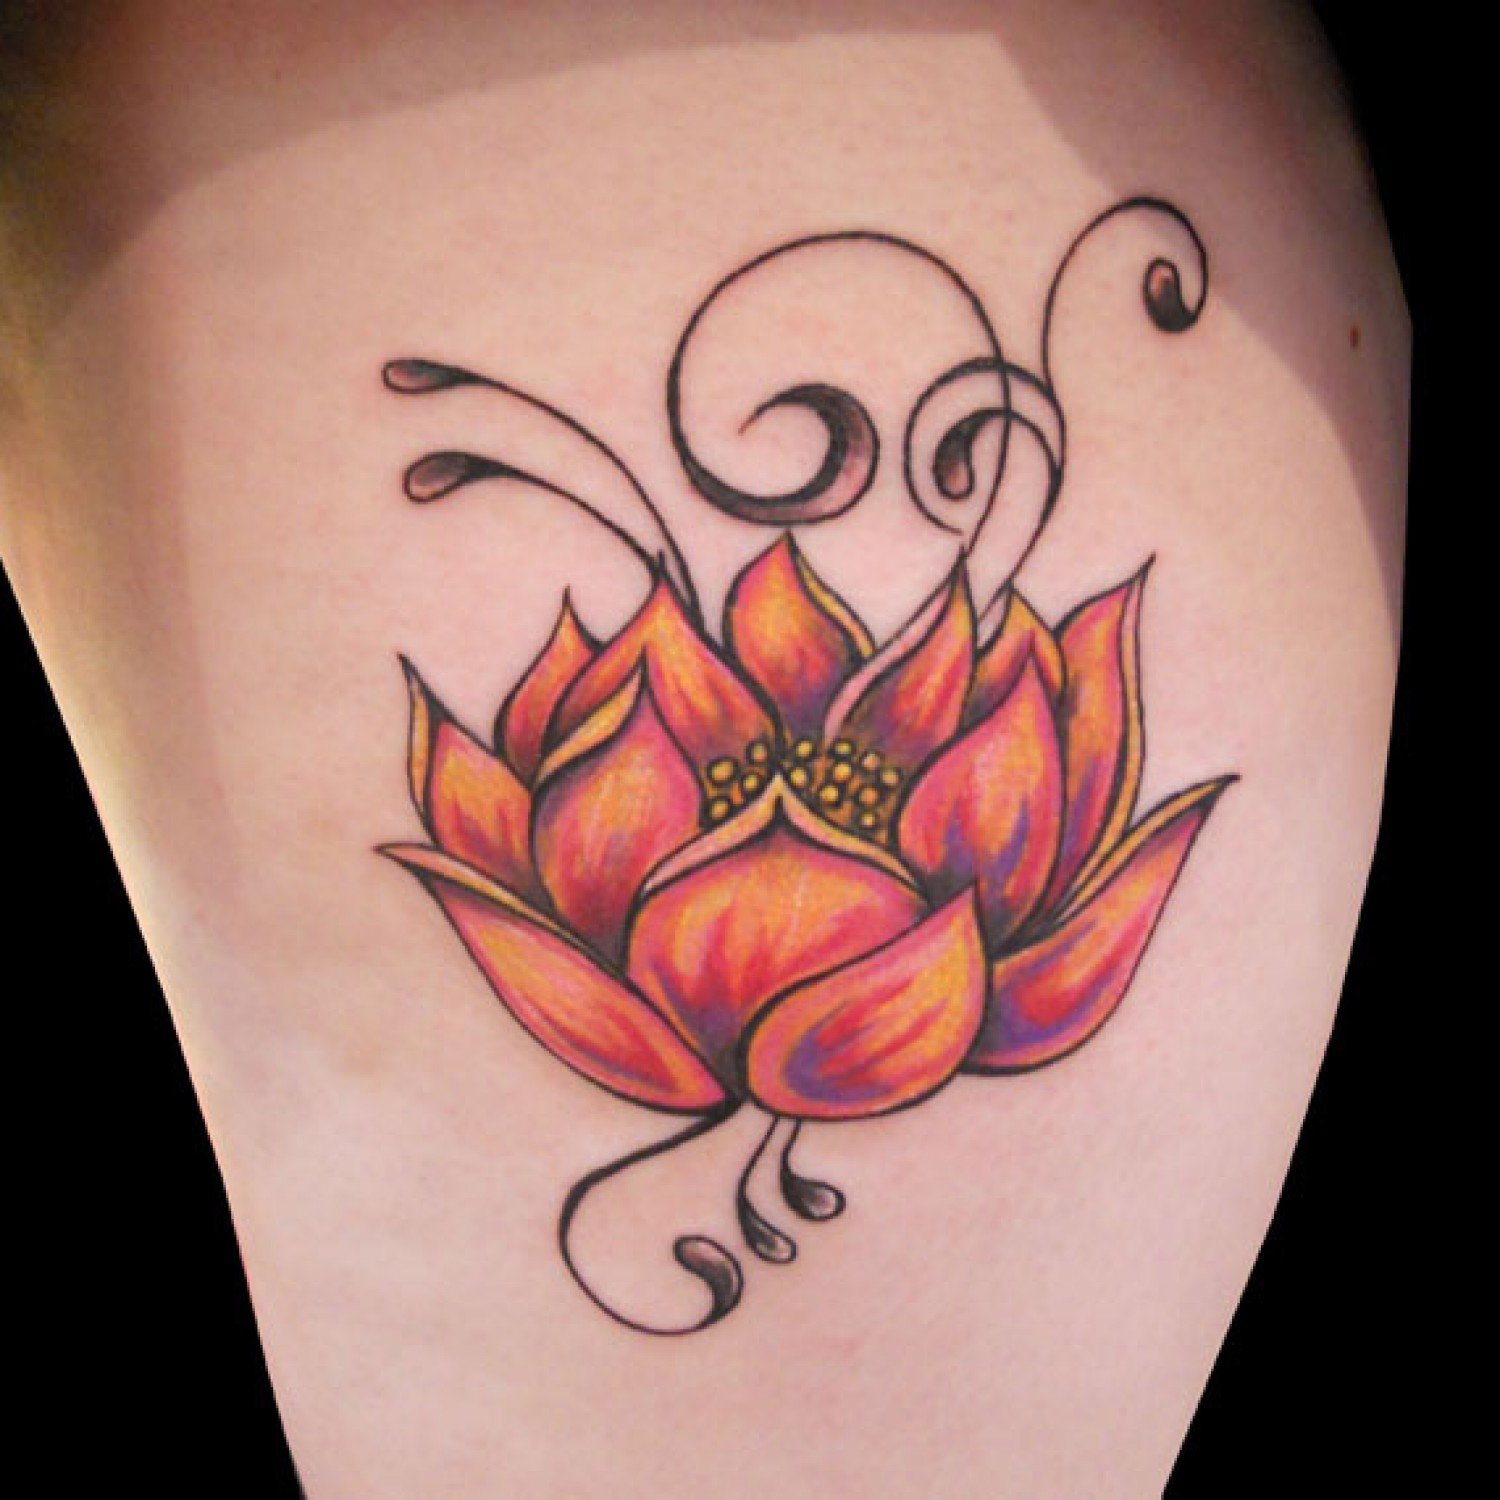 Orange lotus flower tattoo designs tattoo love orange lotus flower tattoo designs mightylinksfo